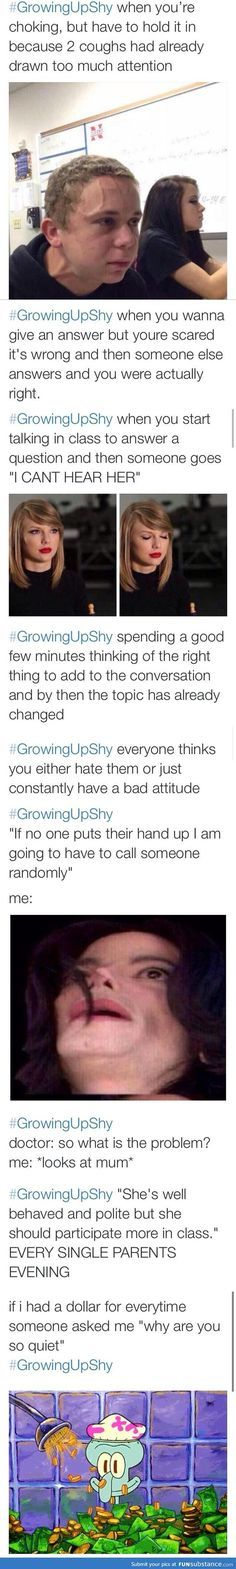 This is me to a point. I've gotten louder and not as reserved as I've gotten older though.